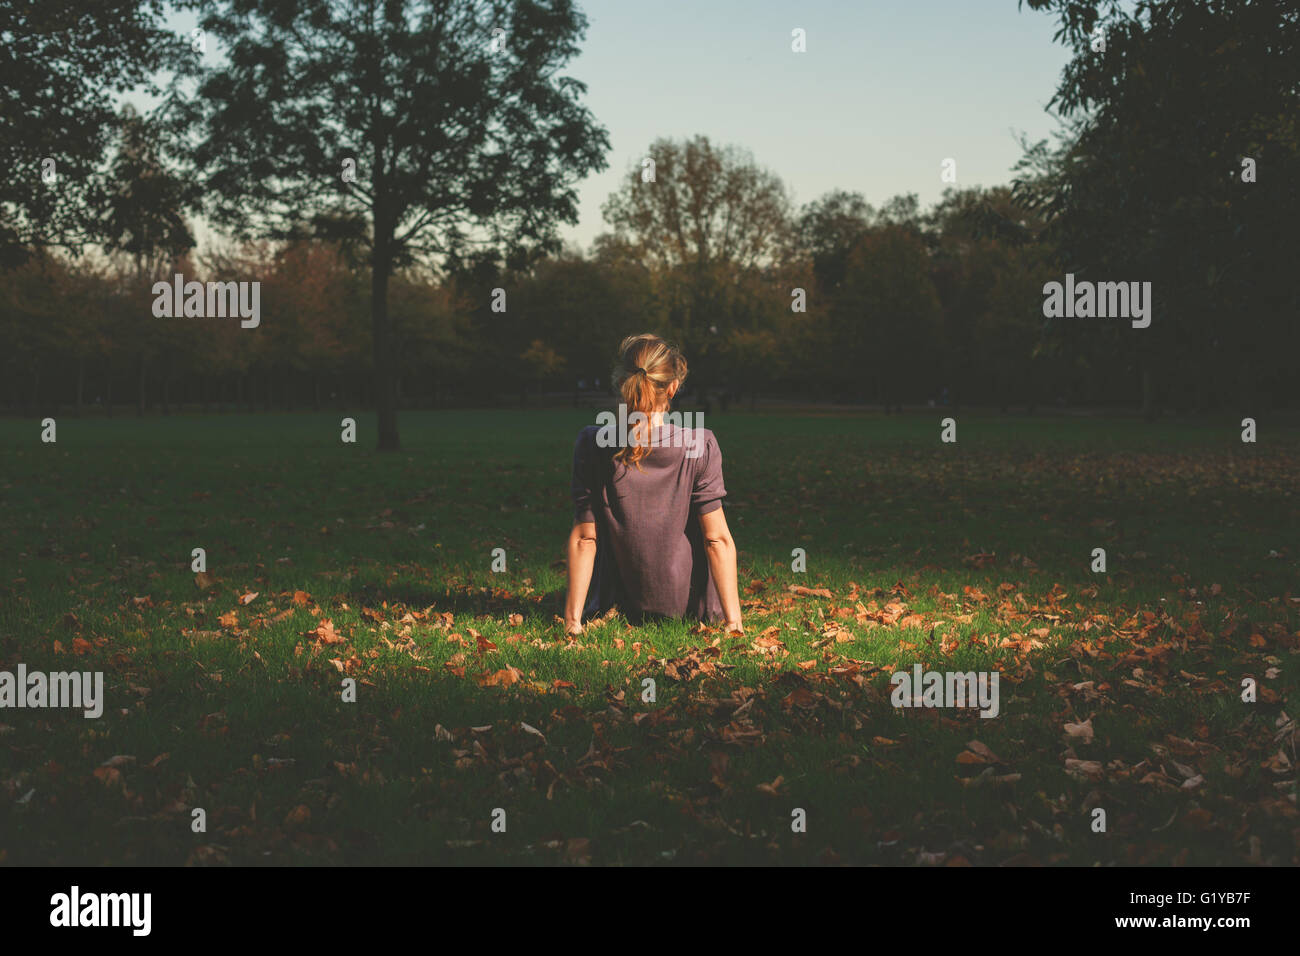 A young woman is siting on the grass in the park in the evening - Stock Image